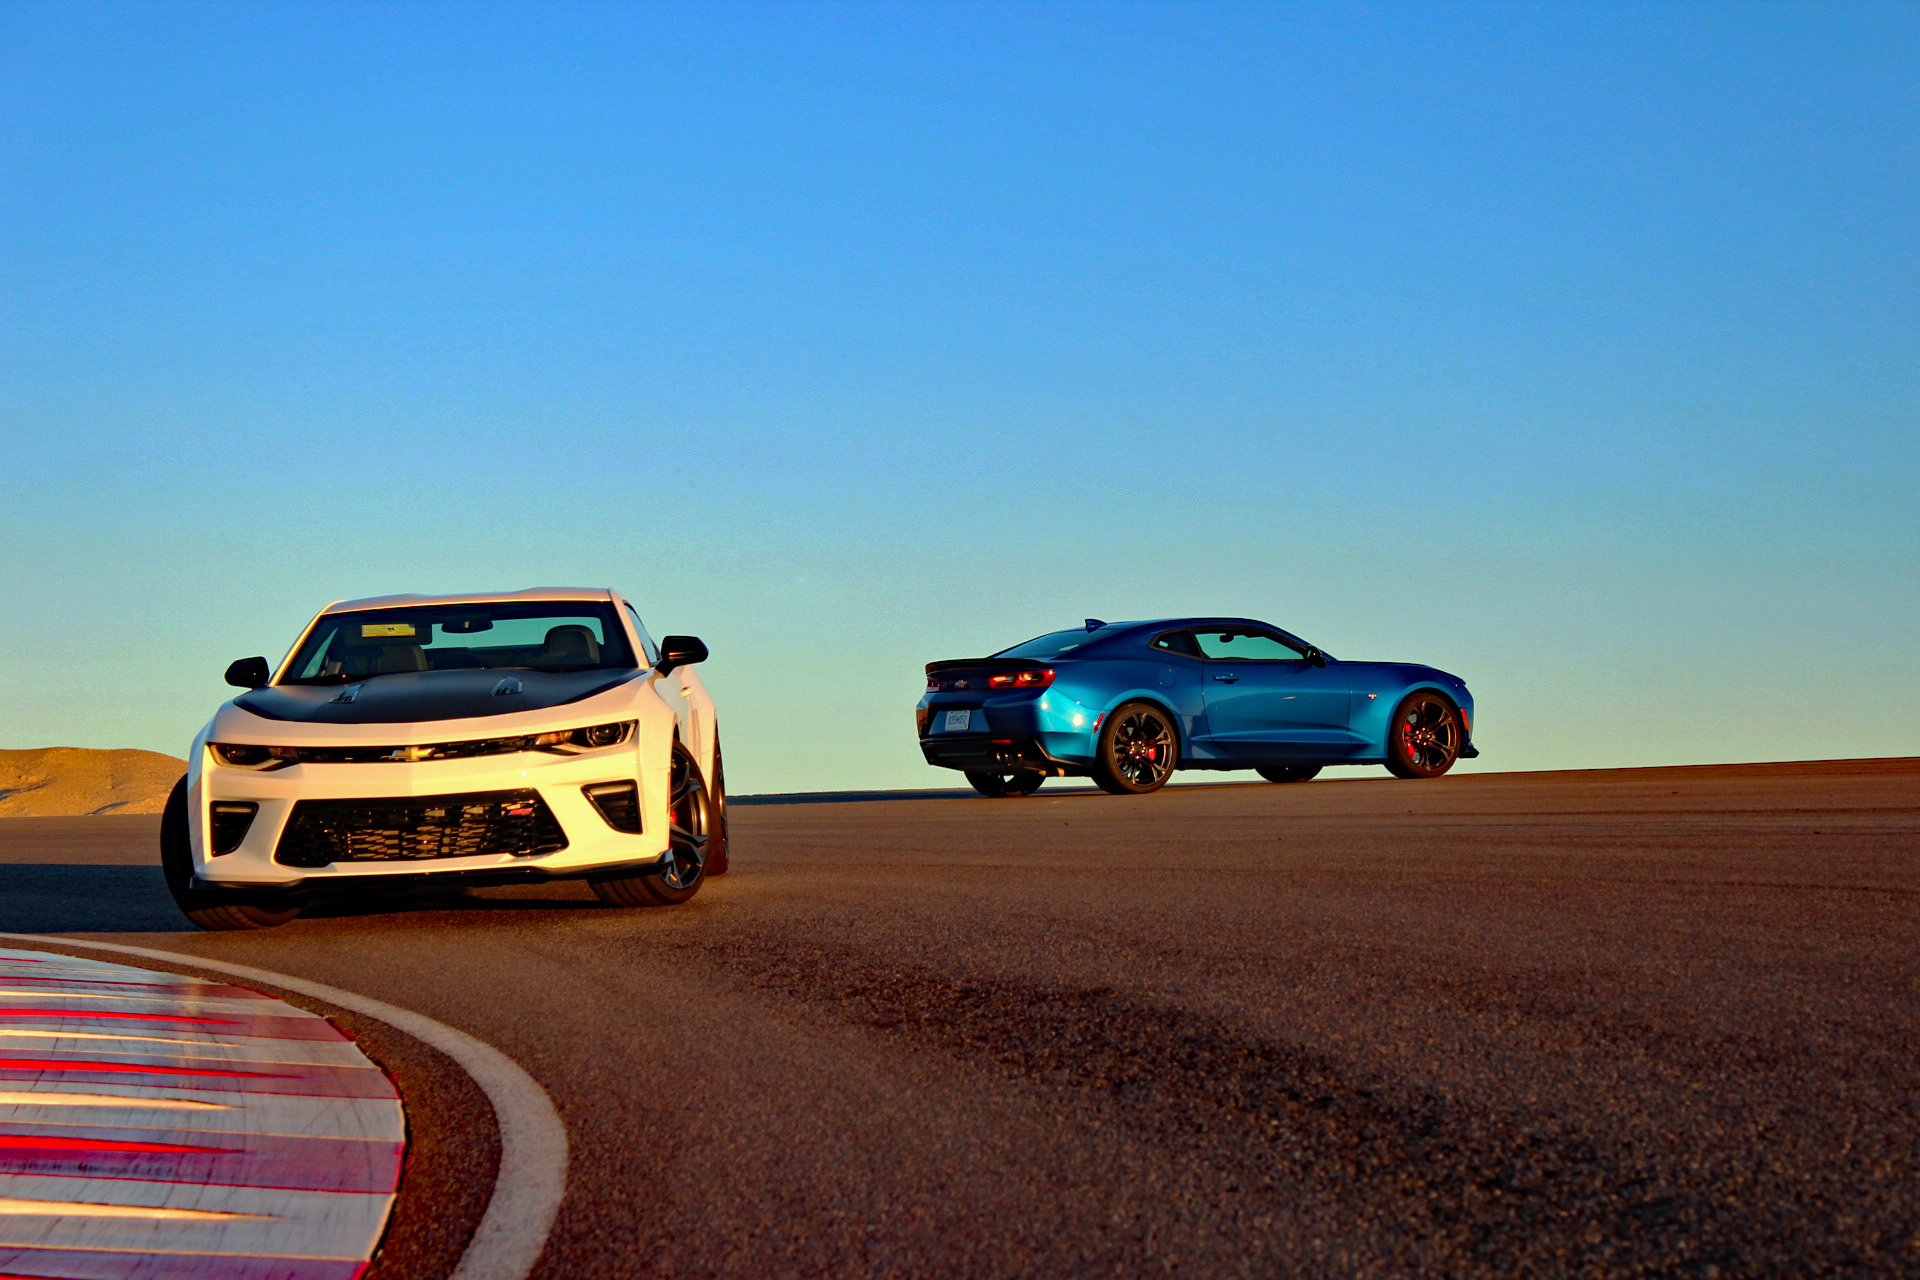 2017 chevrolet camaro 1le first drive review 1leheheheee the 2017 chevrolet camaro 1le track shot publicscrutiny Image collections